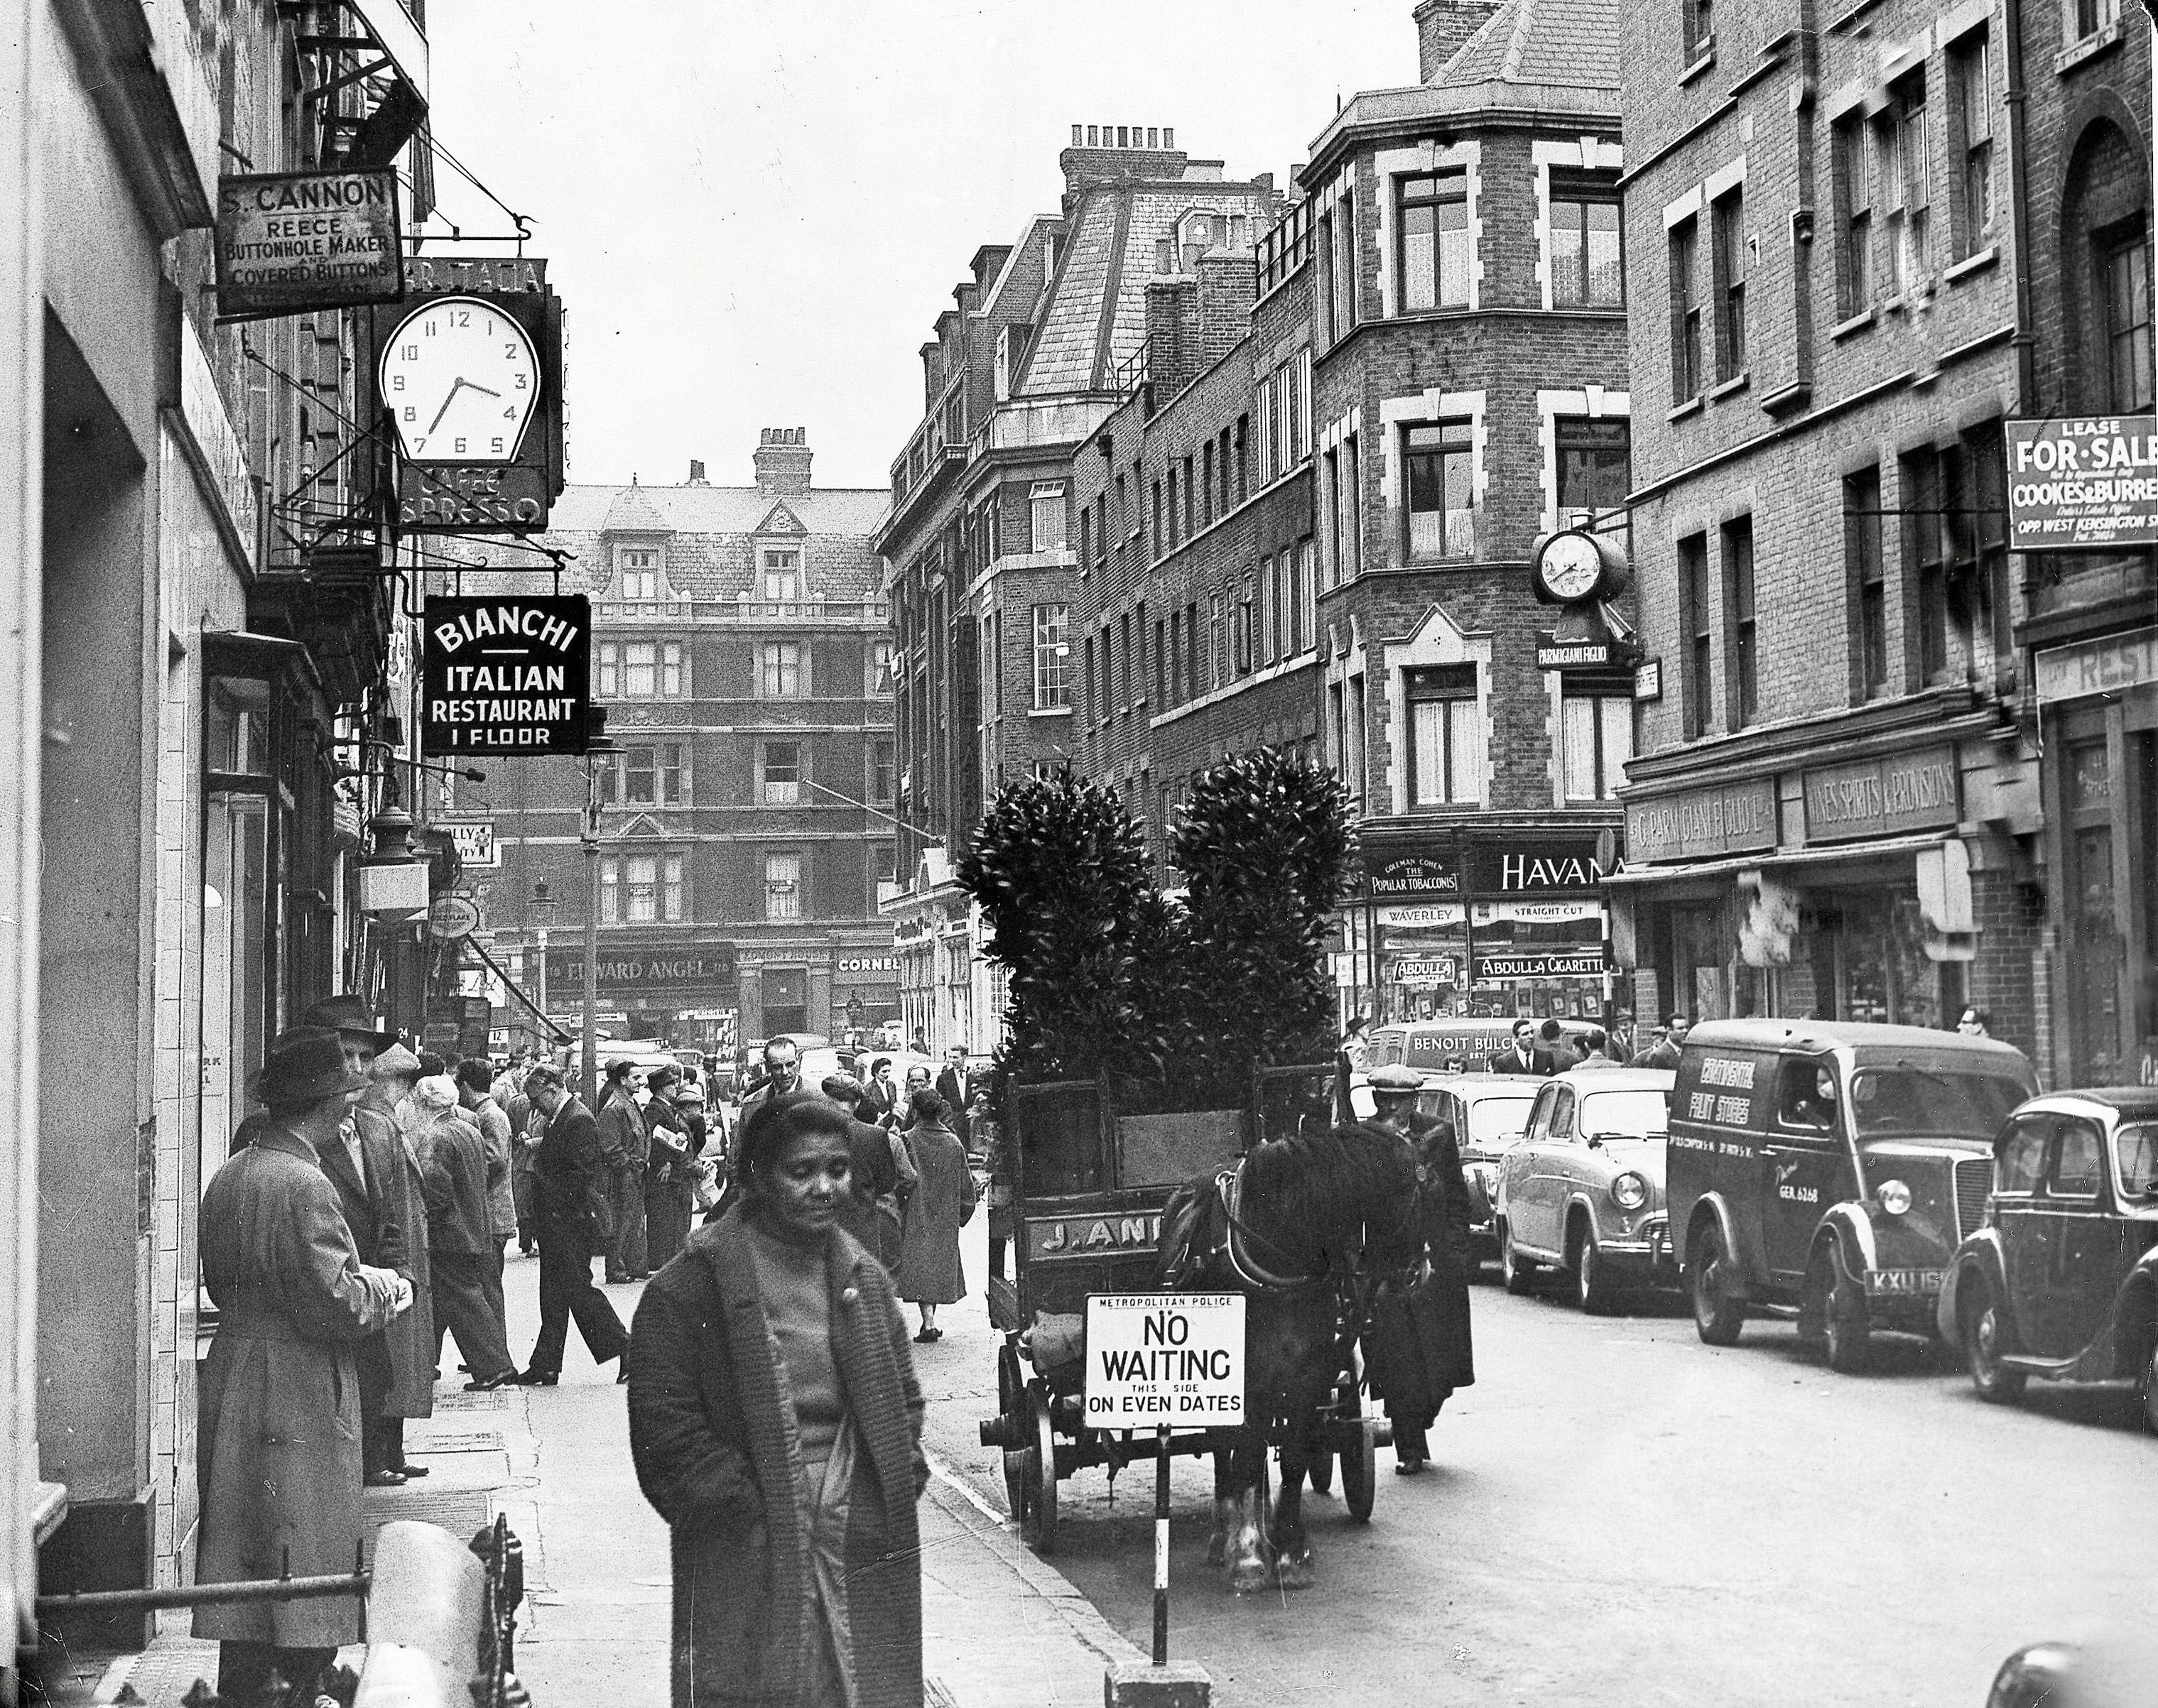 Frith Street in Soho, April 1955. Photo by ANL/REX/Shutterstock